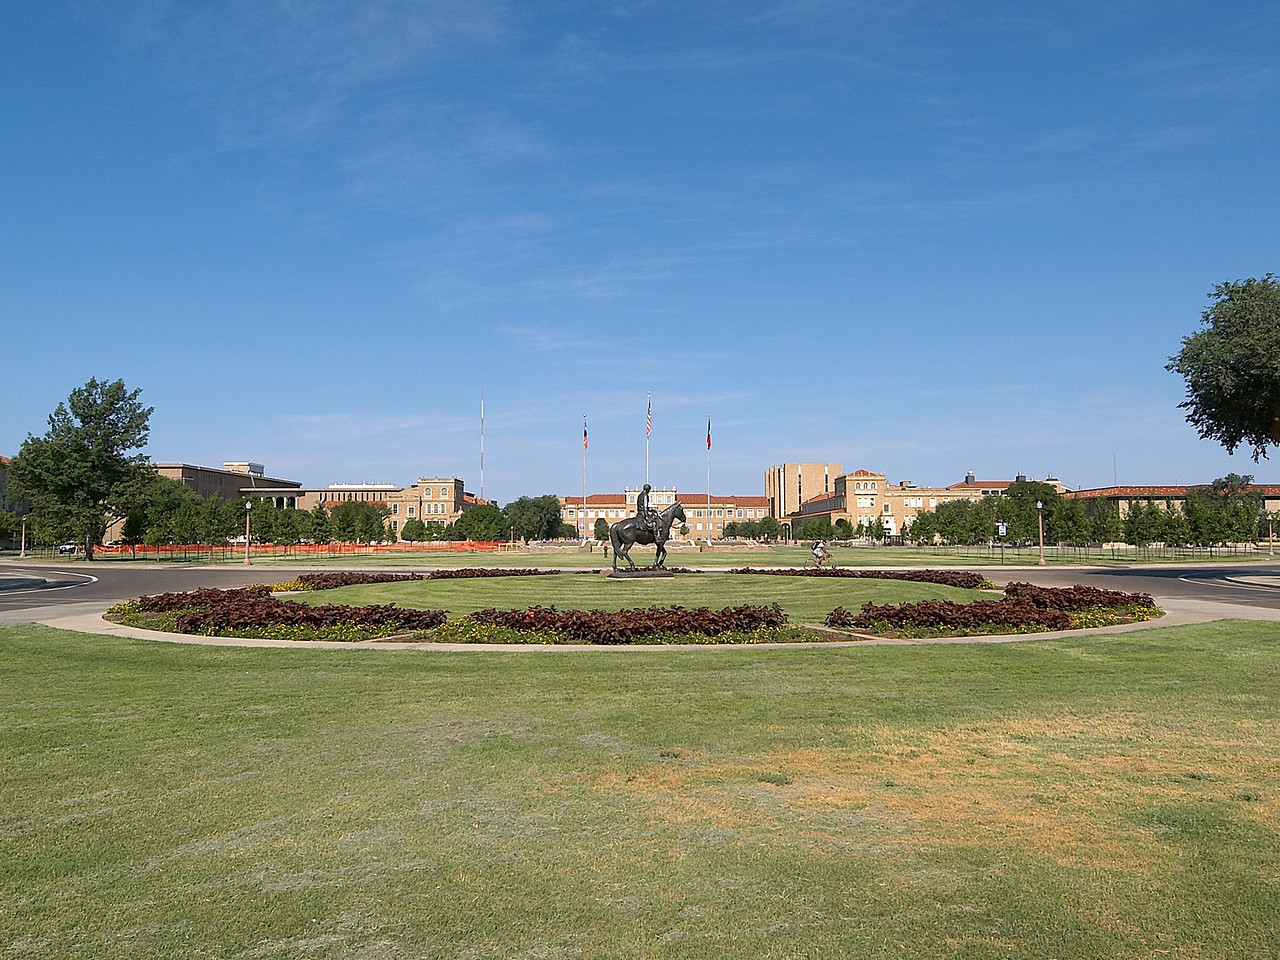 View to Will Rogers Statue and beyond to administration buildings